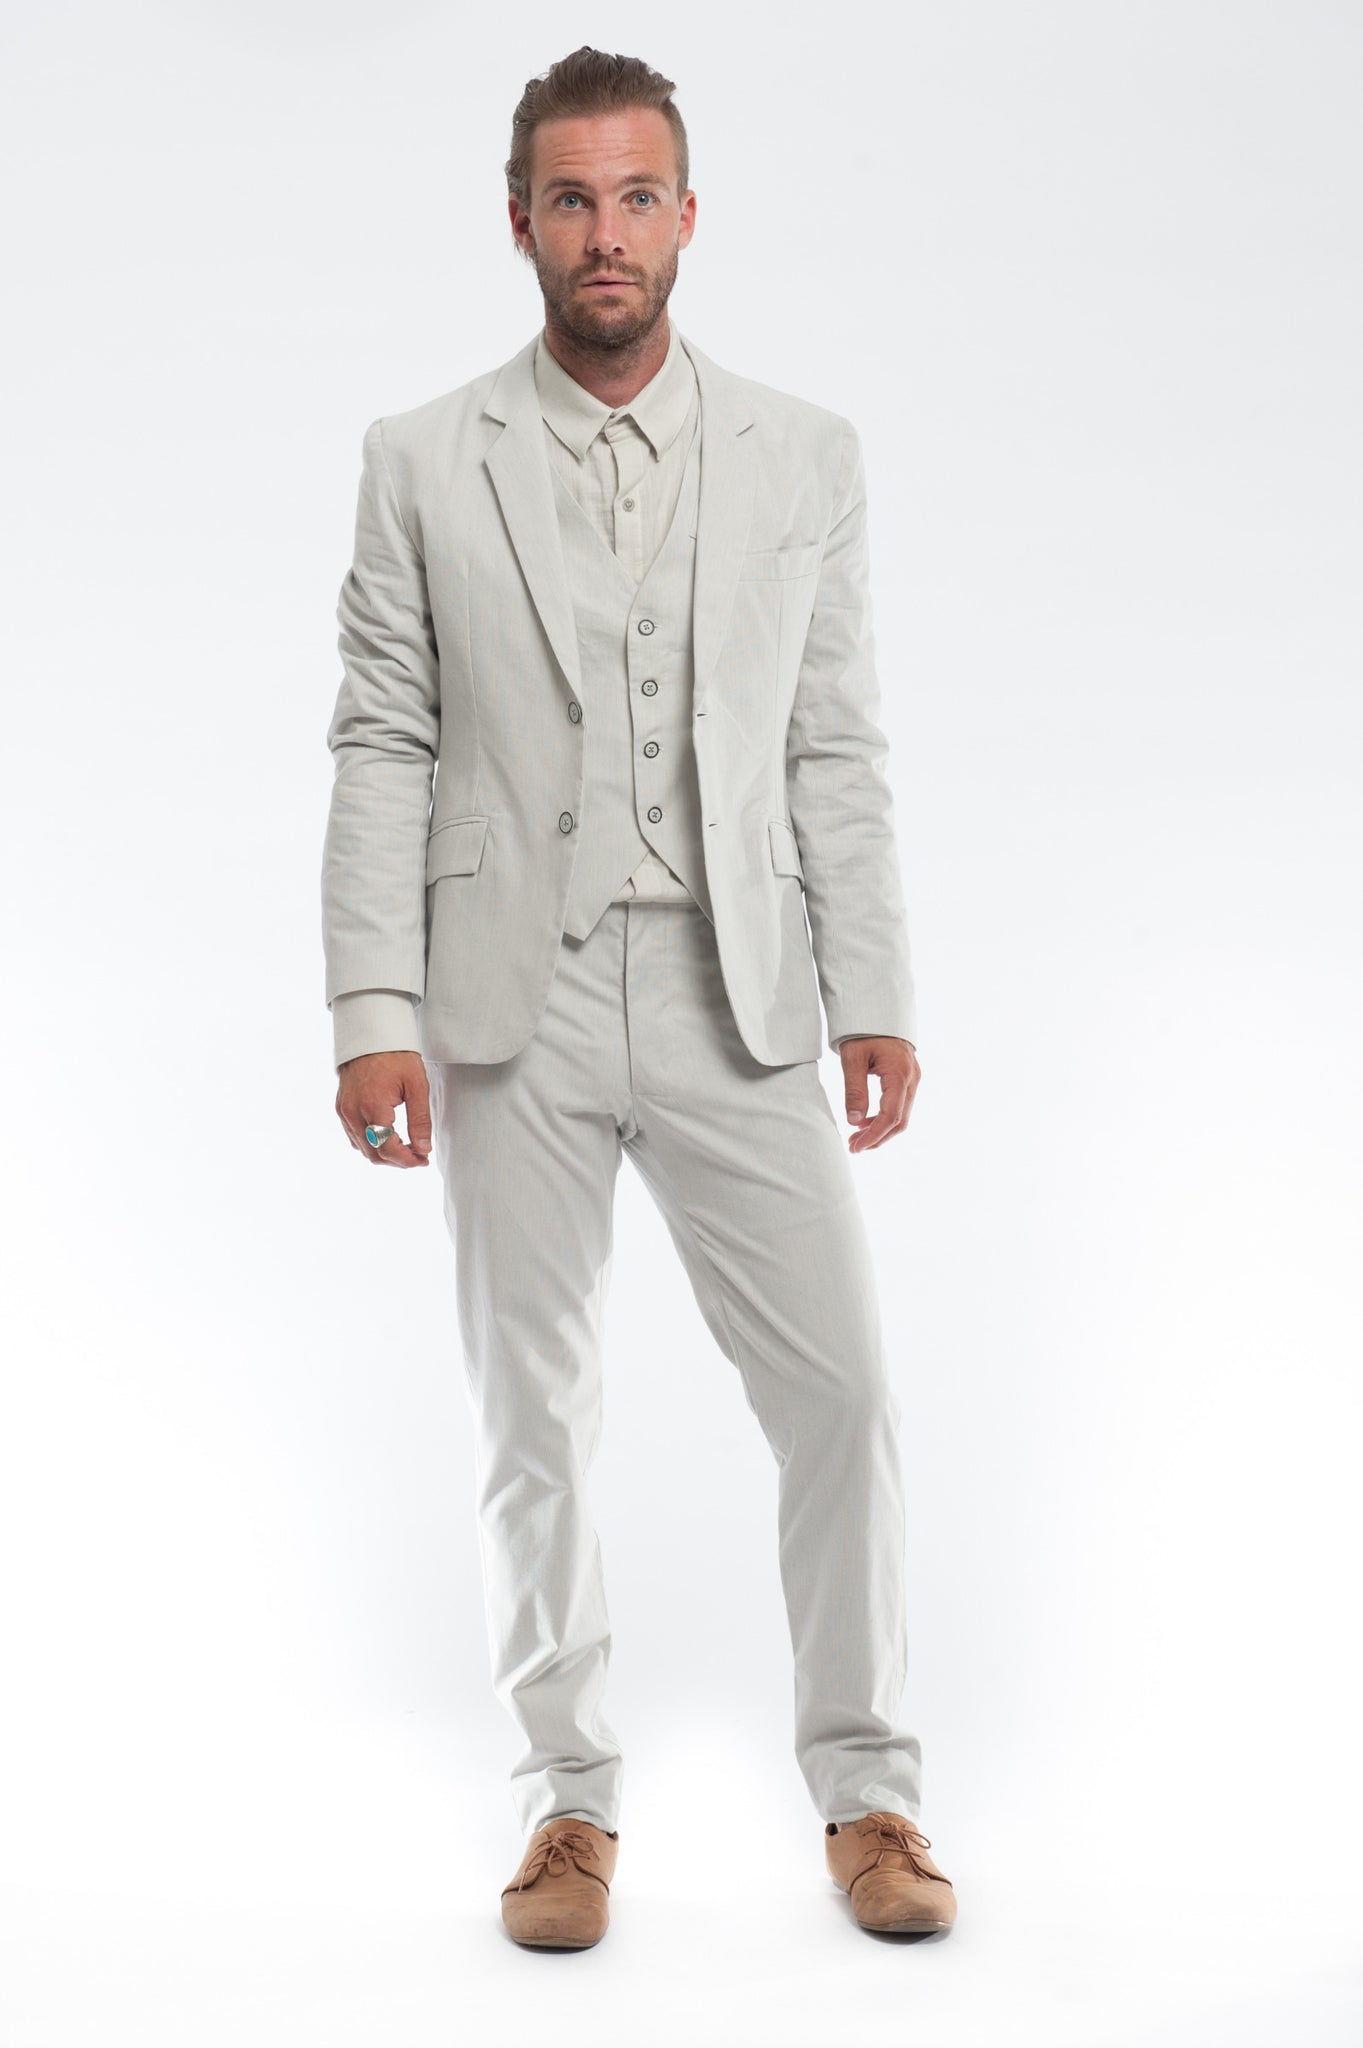 Off-White Pinstripe Suit | Summer Wedding Suit